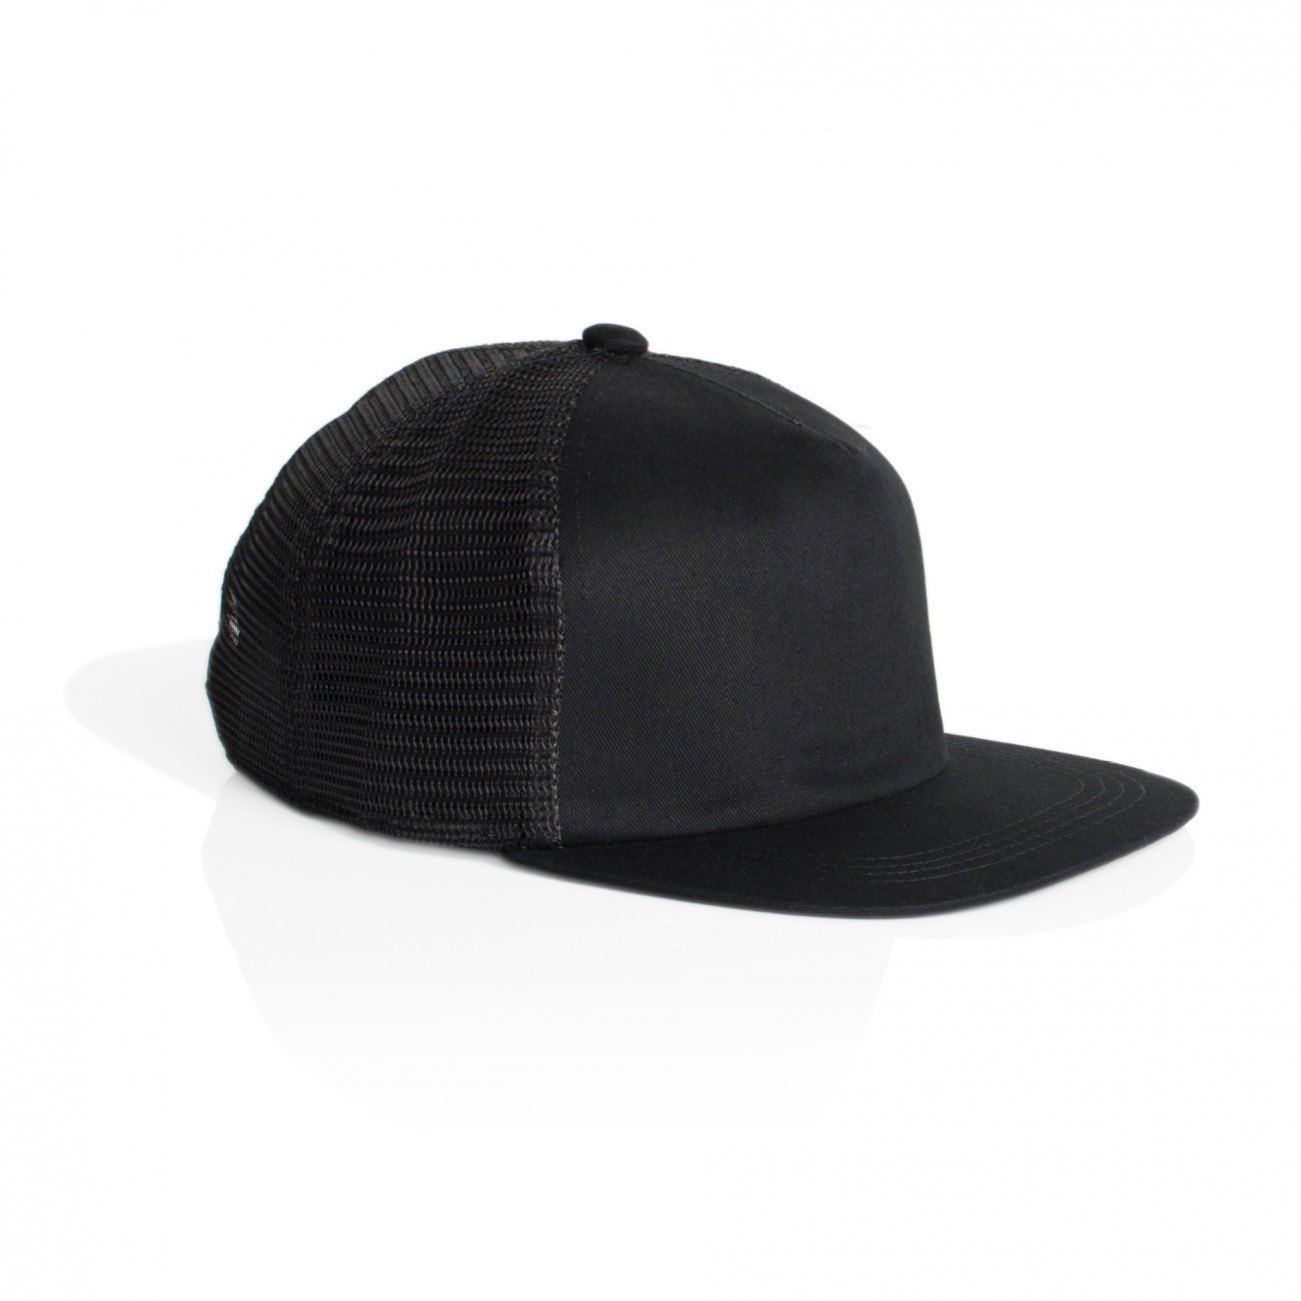 1108_trucker_hat_black_1.jpg